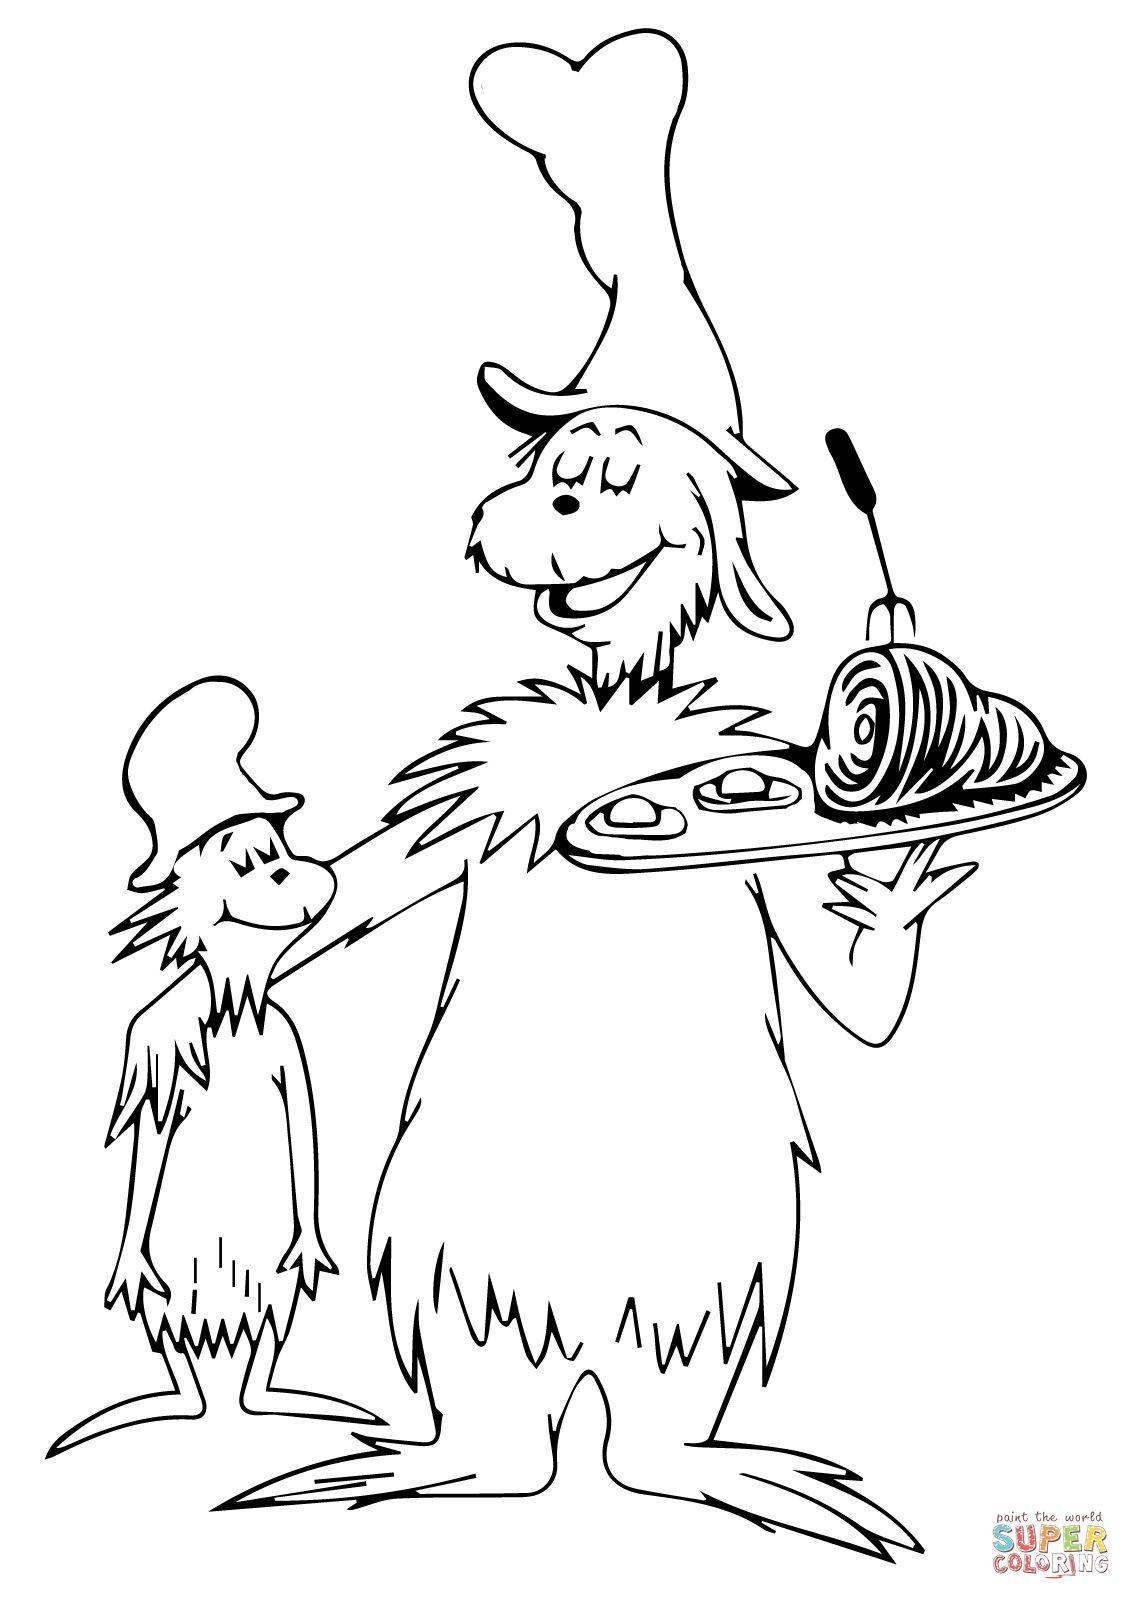 green eggs and ham coloring pages green eggs and ham coloring page free printable coloring pages eggs green coloring ham and